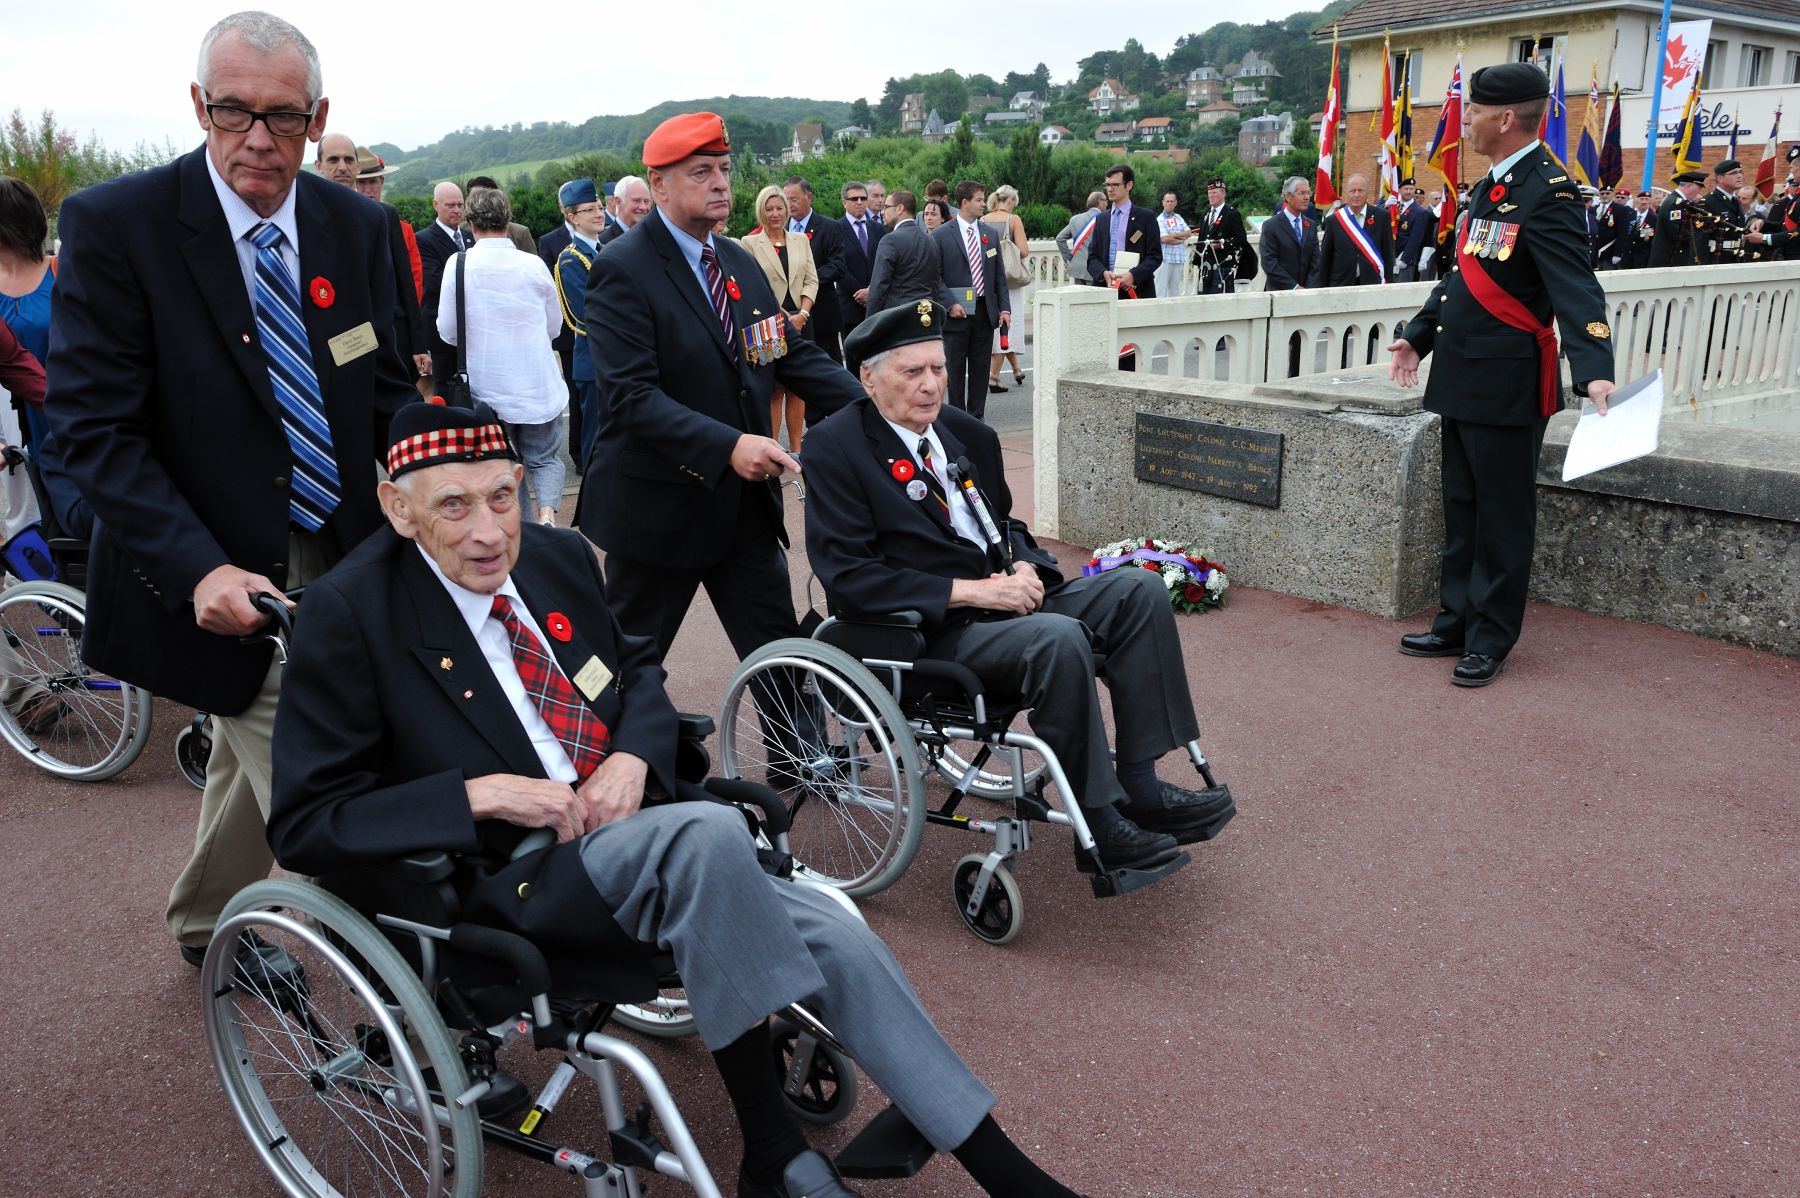 Following the ceremony at the Pourville Memorial, all the participates headed for Merritt Bridge.